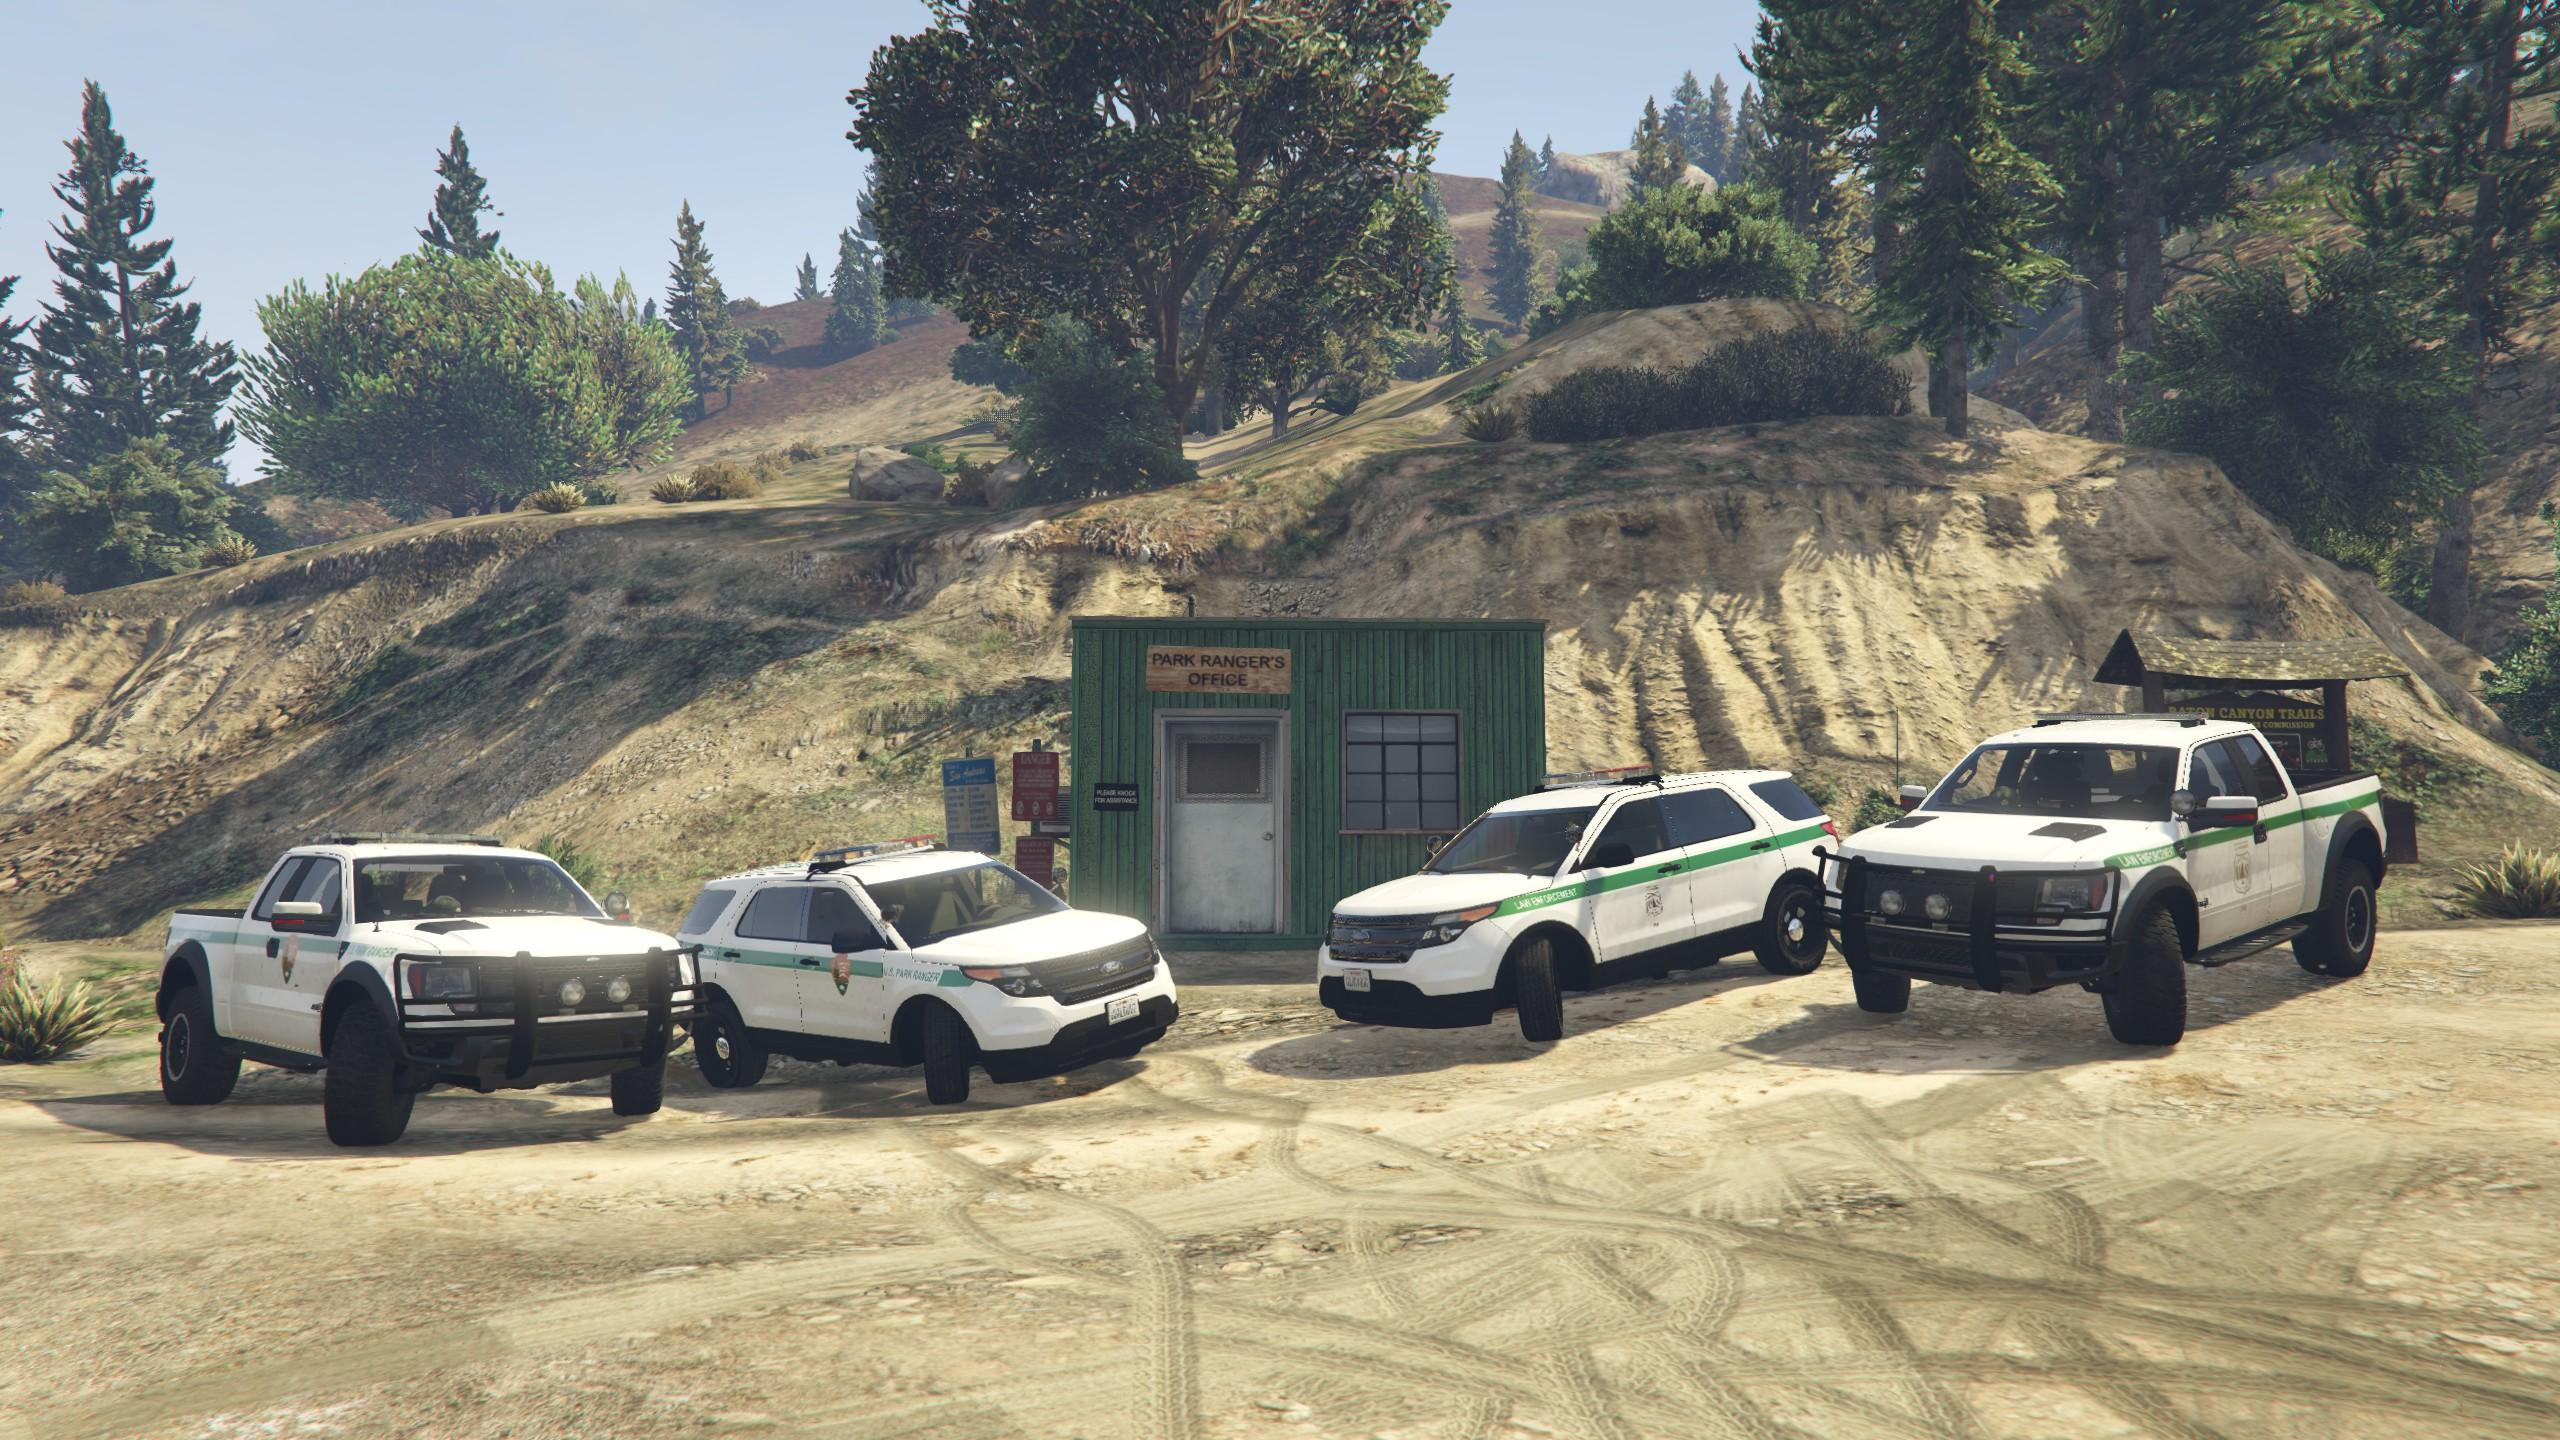 gta 4 cheats for helicopter with 4k Us Park Ranger And Us Forest Ranger Skins For Ford Explorer And Ford Raptor on 73433 Mi 28 Night Hunter also Mil Mi 26 Halo Largest Mass Produced Heli Add On also Cell Phone Cheats On Game Gta 5 additionally Mclaren F1 Gtr Longtail also 70926 Police Cars Pack Els.